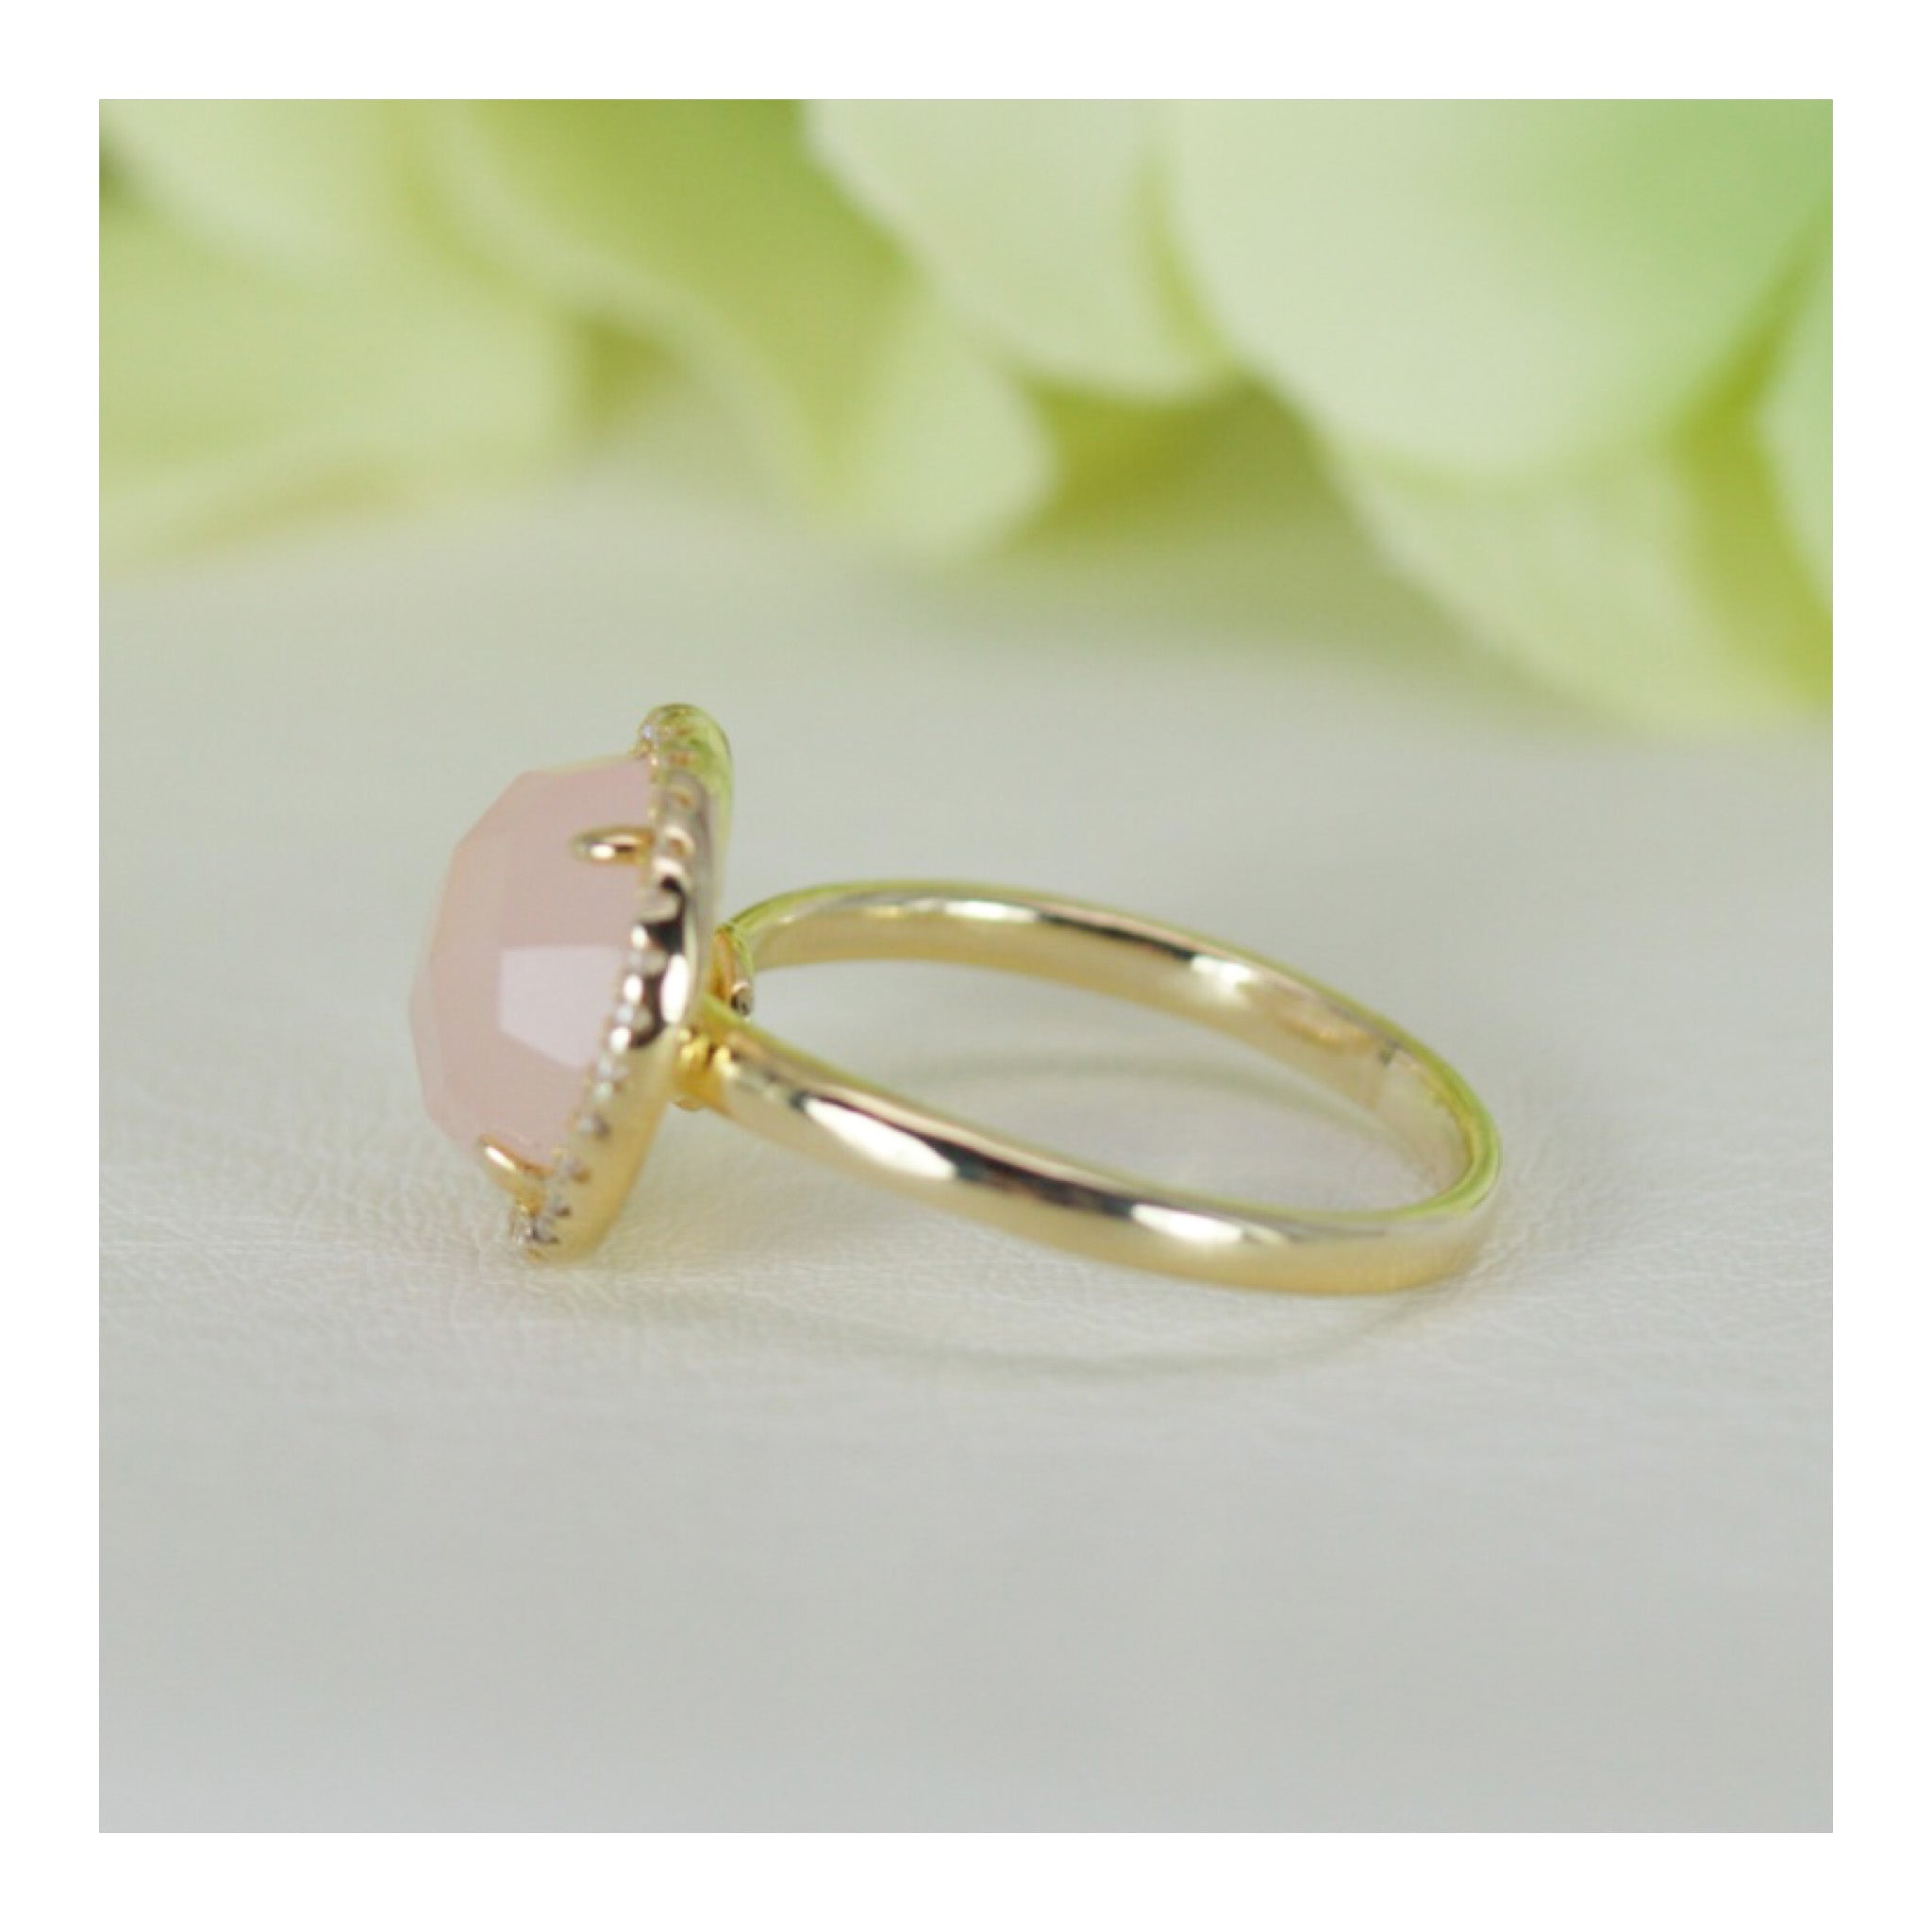 ring quartz rose gemstones cz gold geometric wedding engagement rings stone carat layered plated charm products